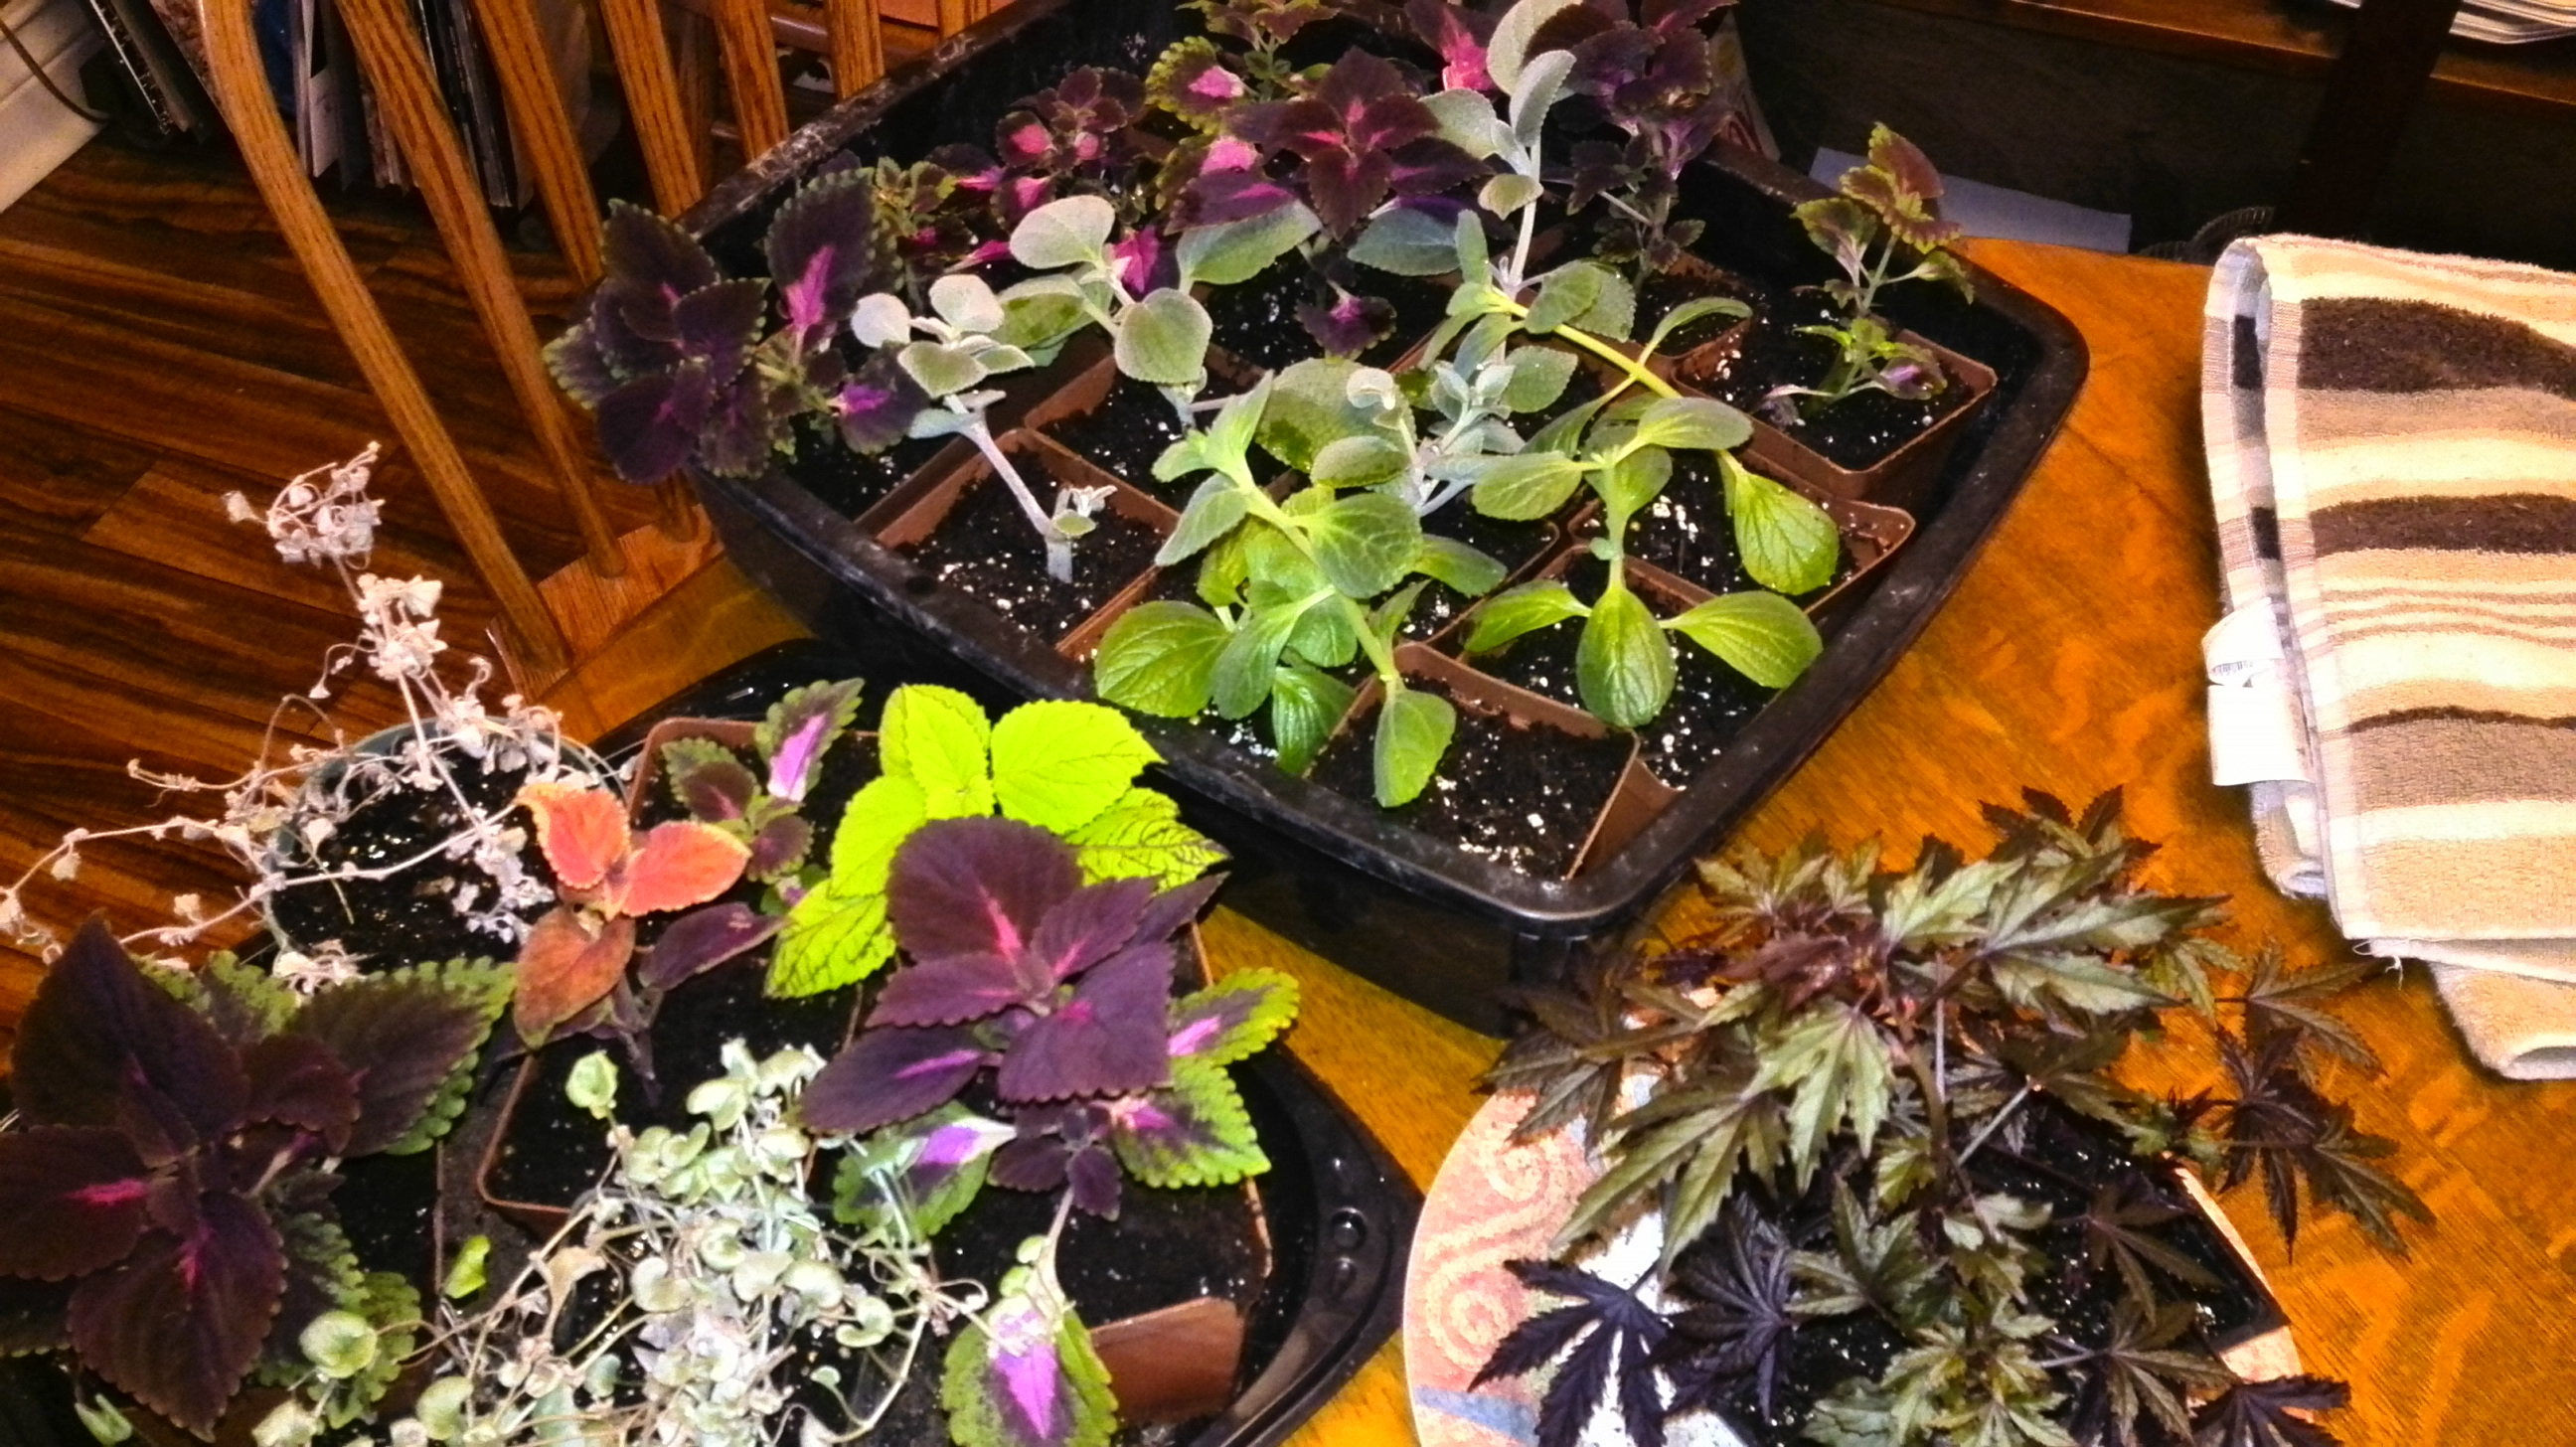 plants getting ready to spread holiday cheer. Plectranthus, Coleus, Hibiscus acetosella, and more!